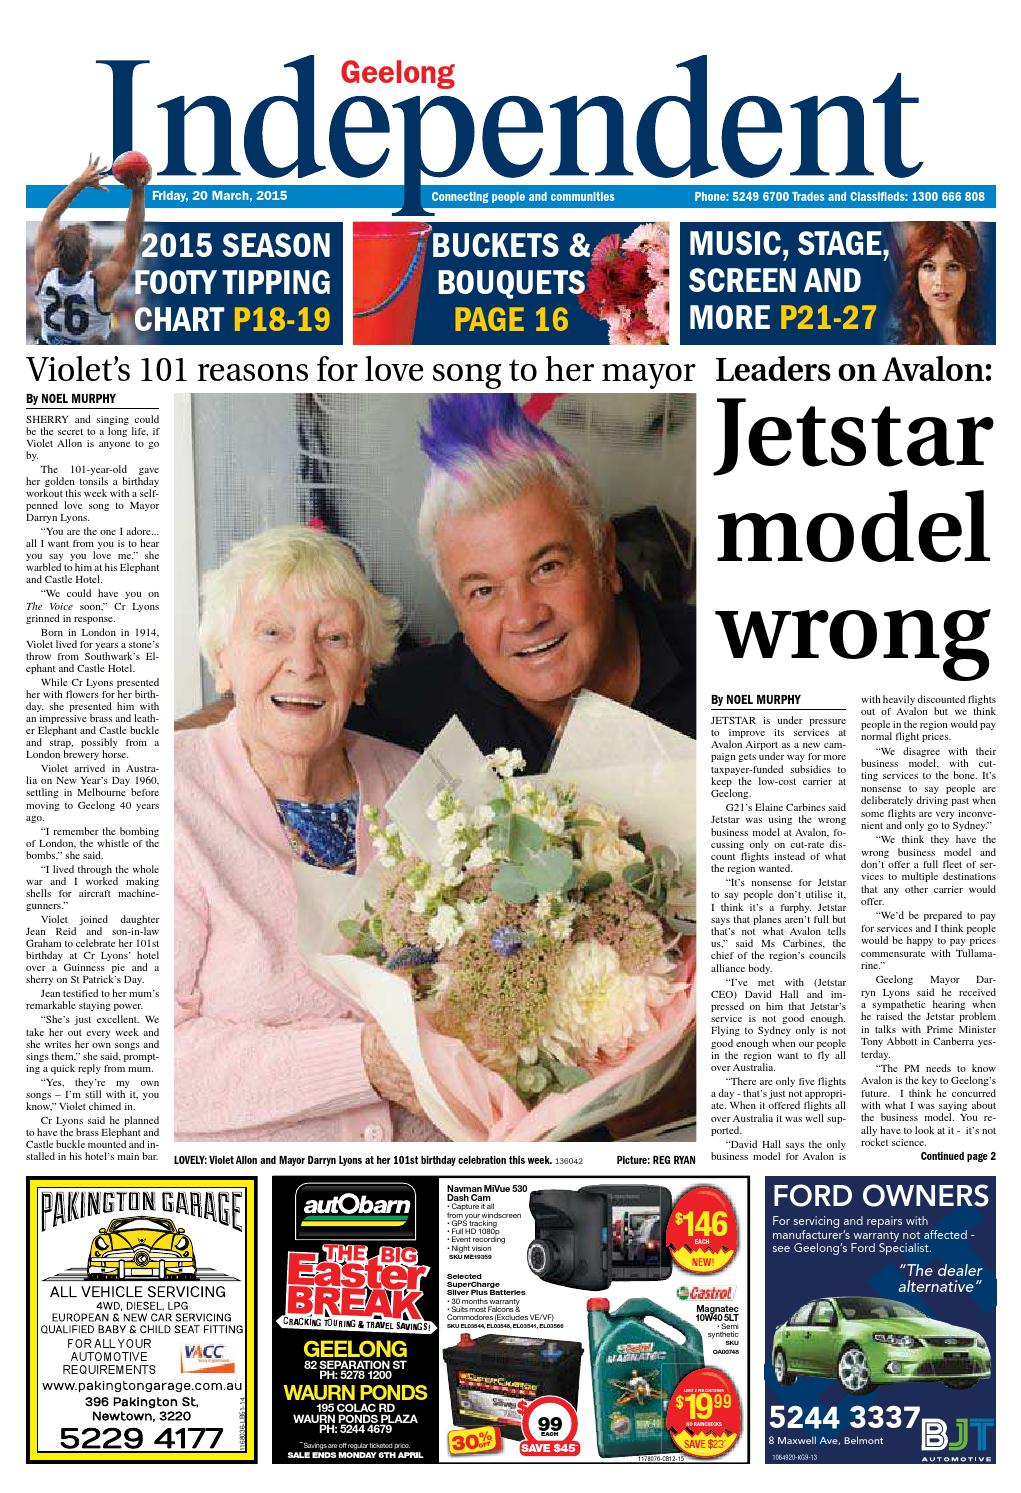 Geelong Independent 20th March 2015 By Star News Group Issuu